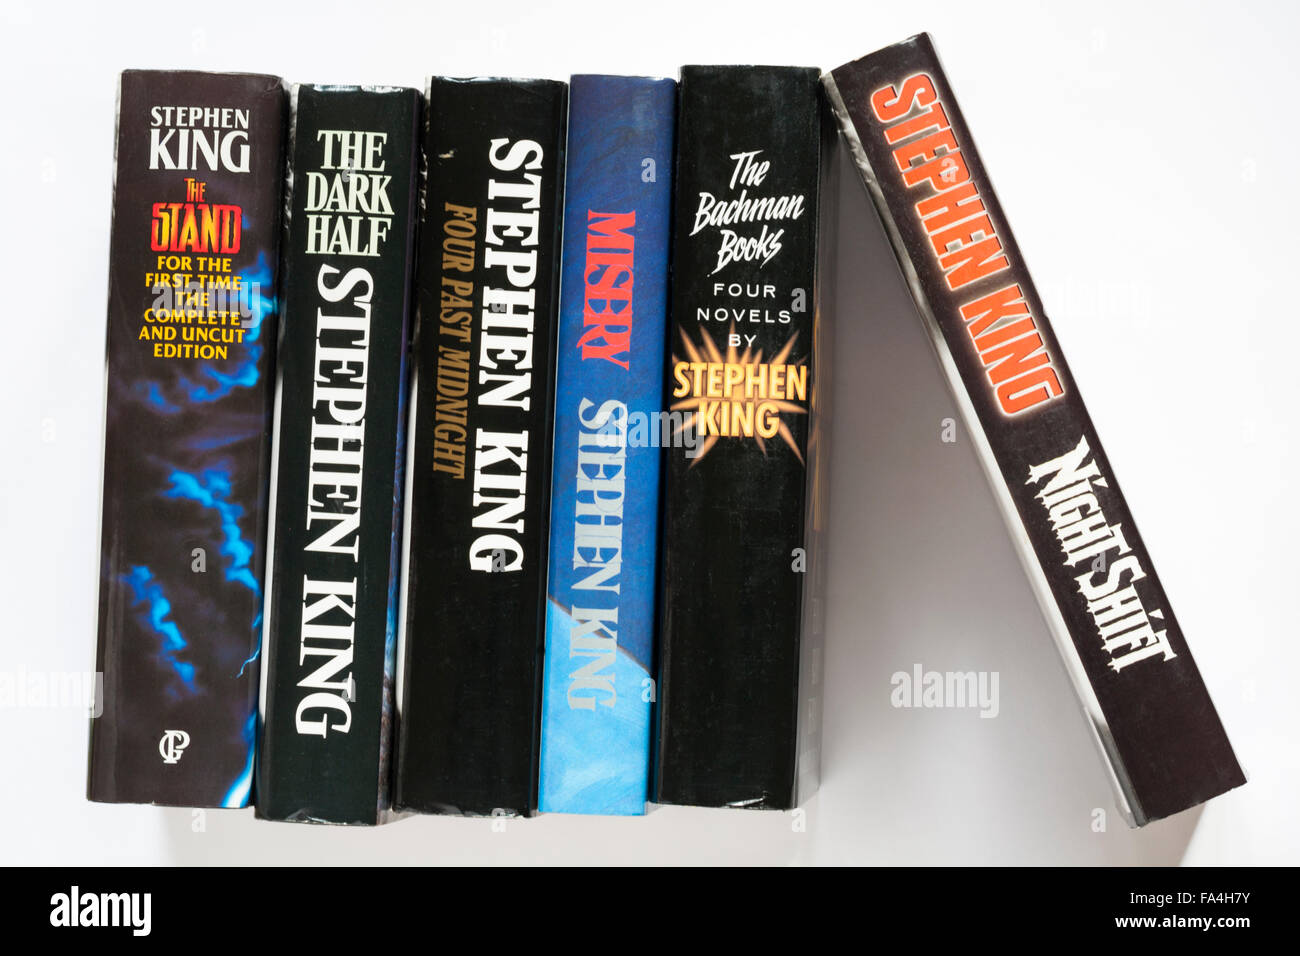 row of Stephen King books including Four Past Midnight, The Dark Half, the Stand, Night Shift, Misery and Four Novels - Stock Image